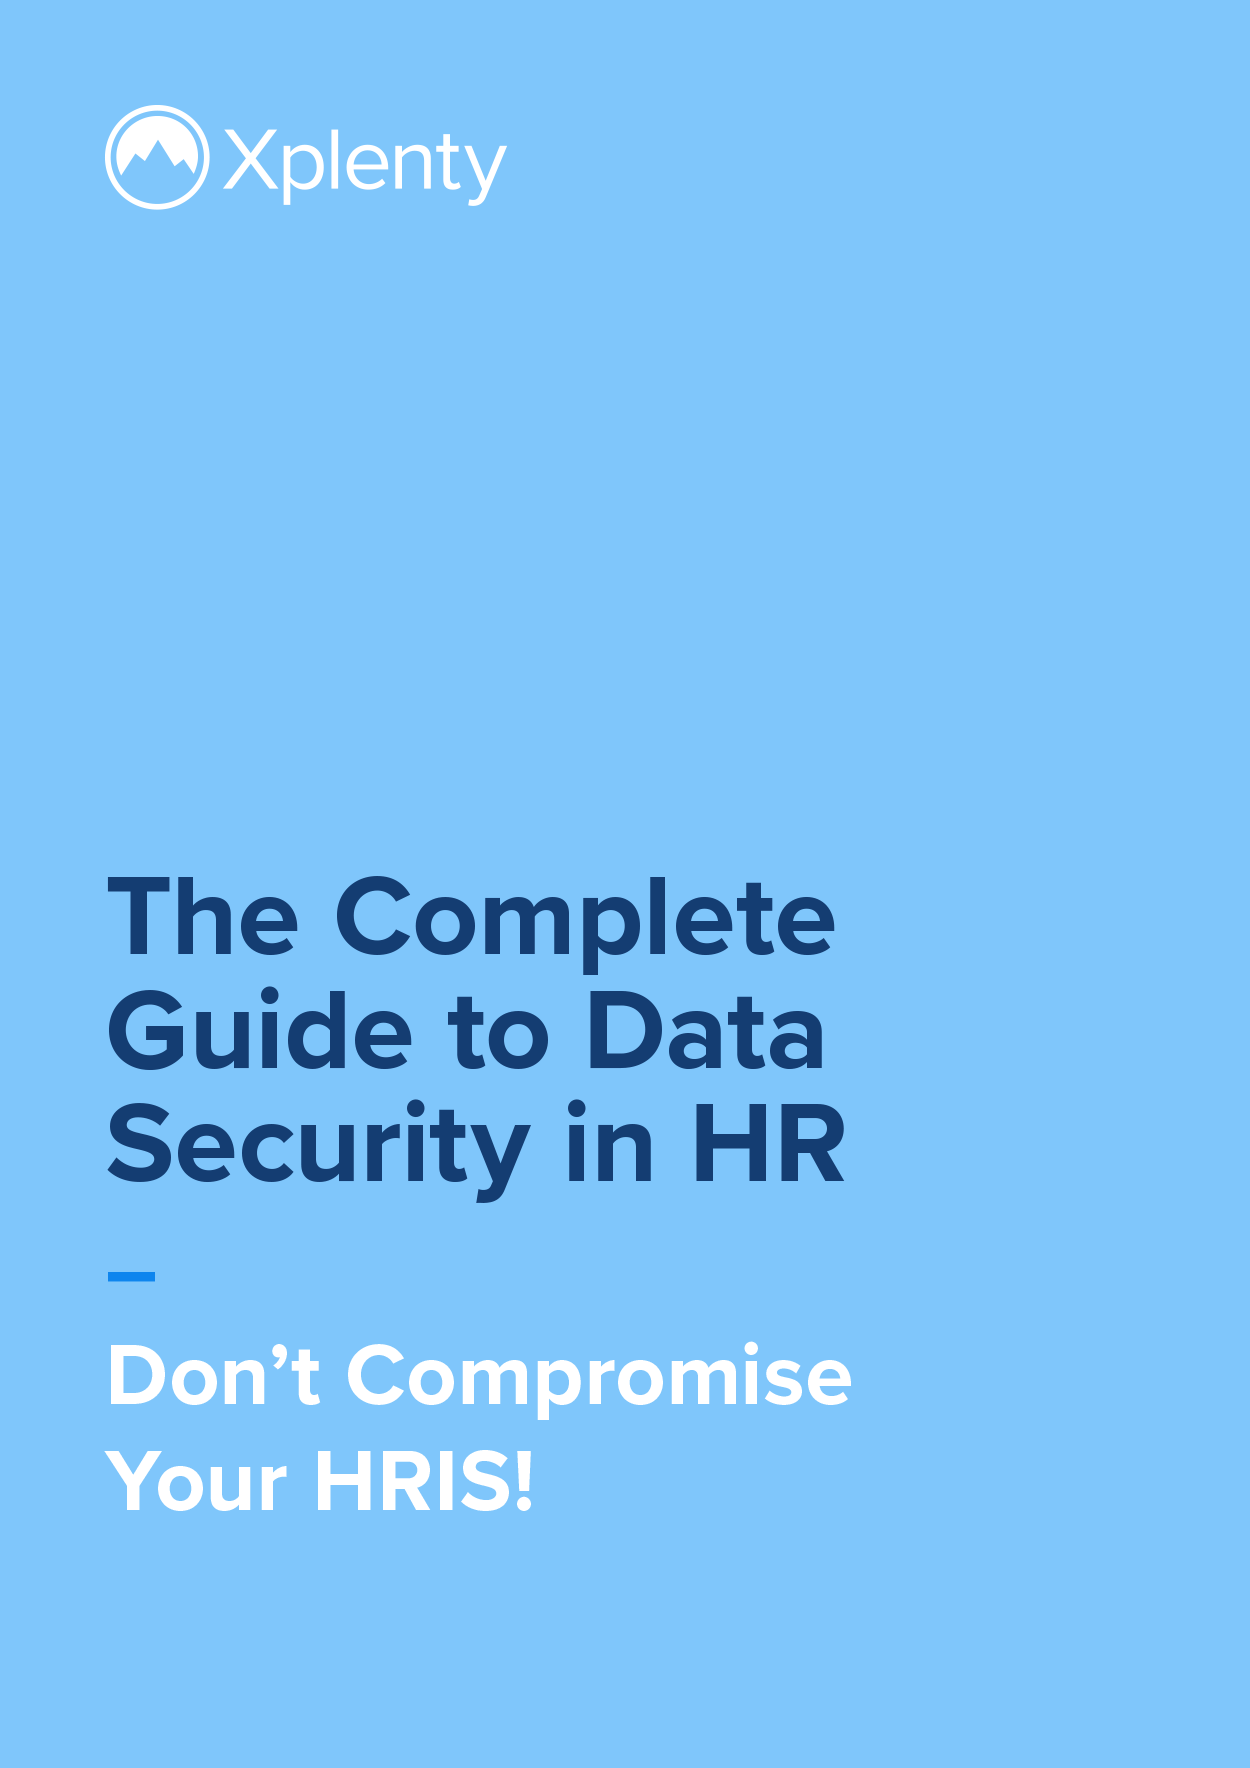 The Complete Guide to Data Security in HR